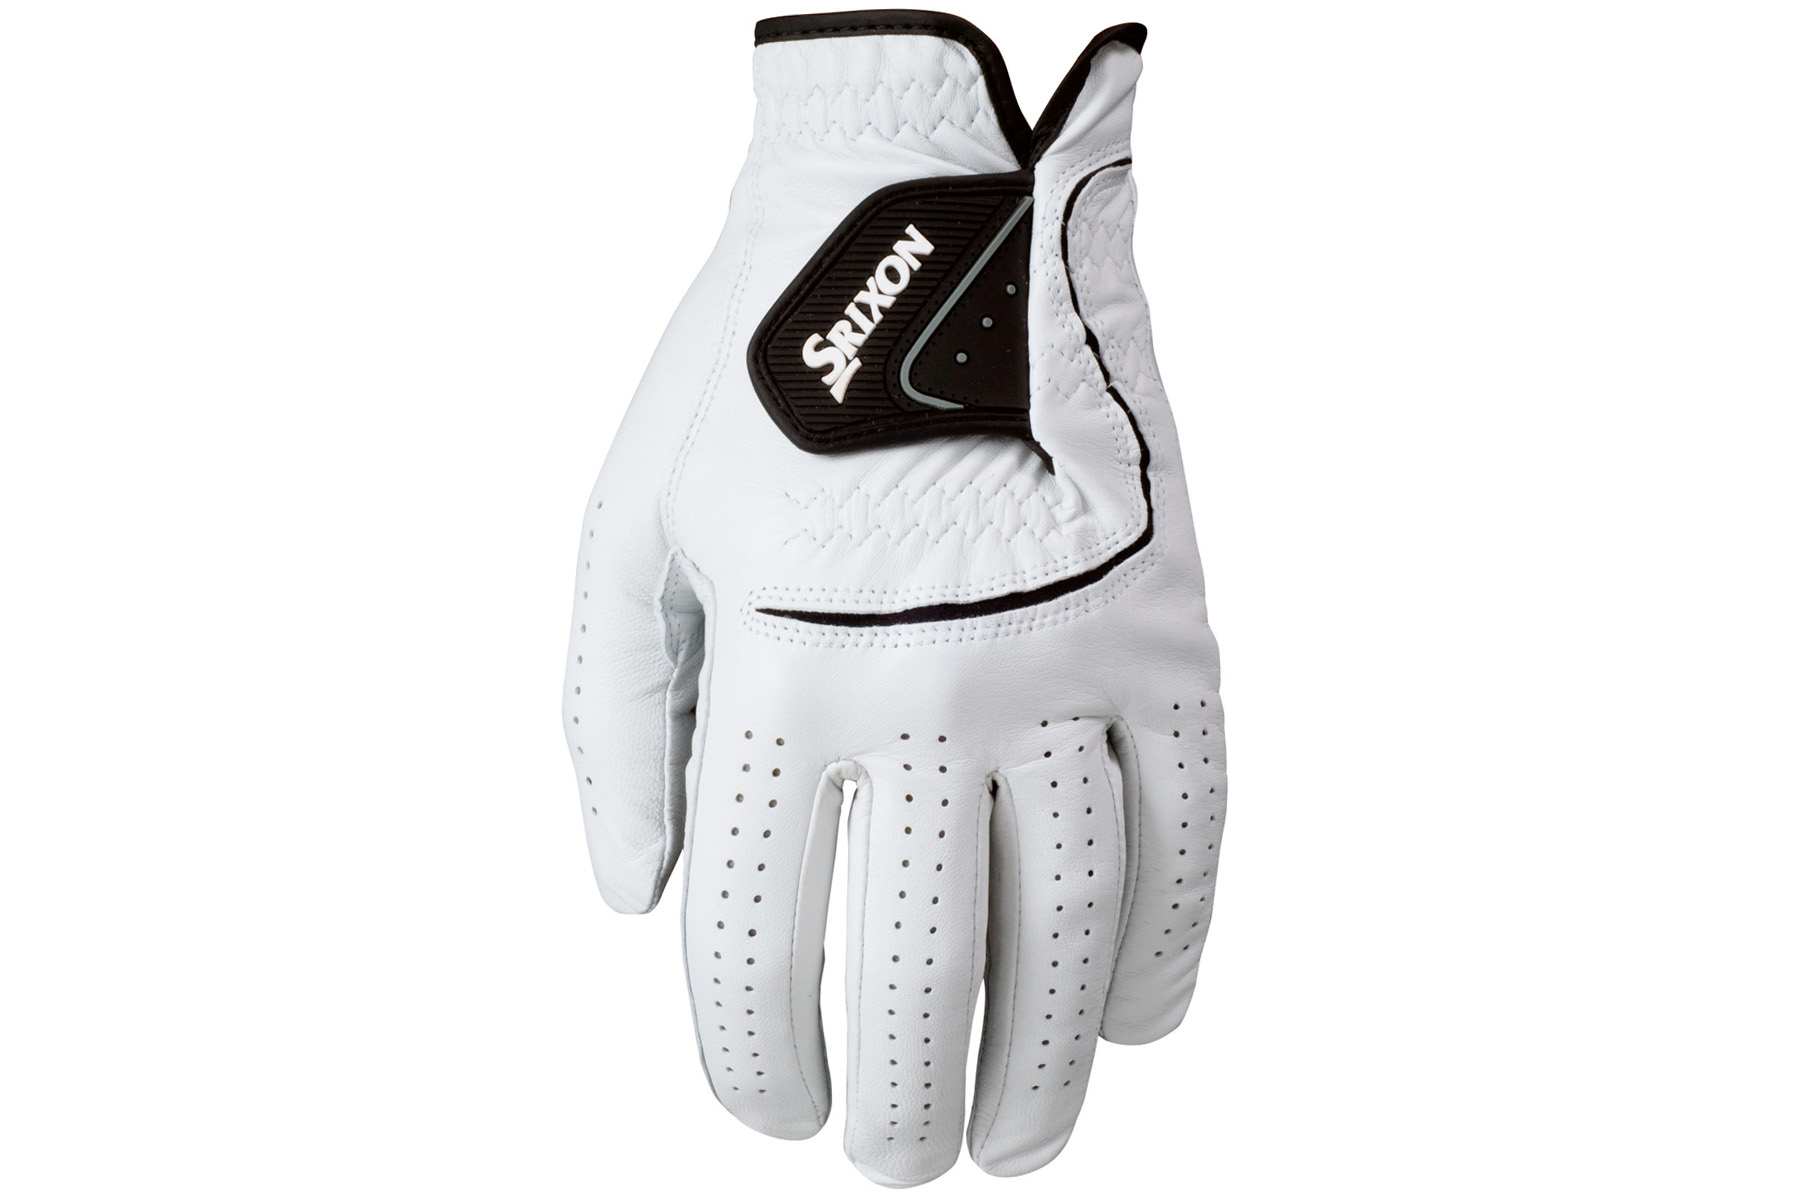 Ladies leather golf gloves uk - Srixon Cabretta Leather Glove